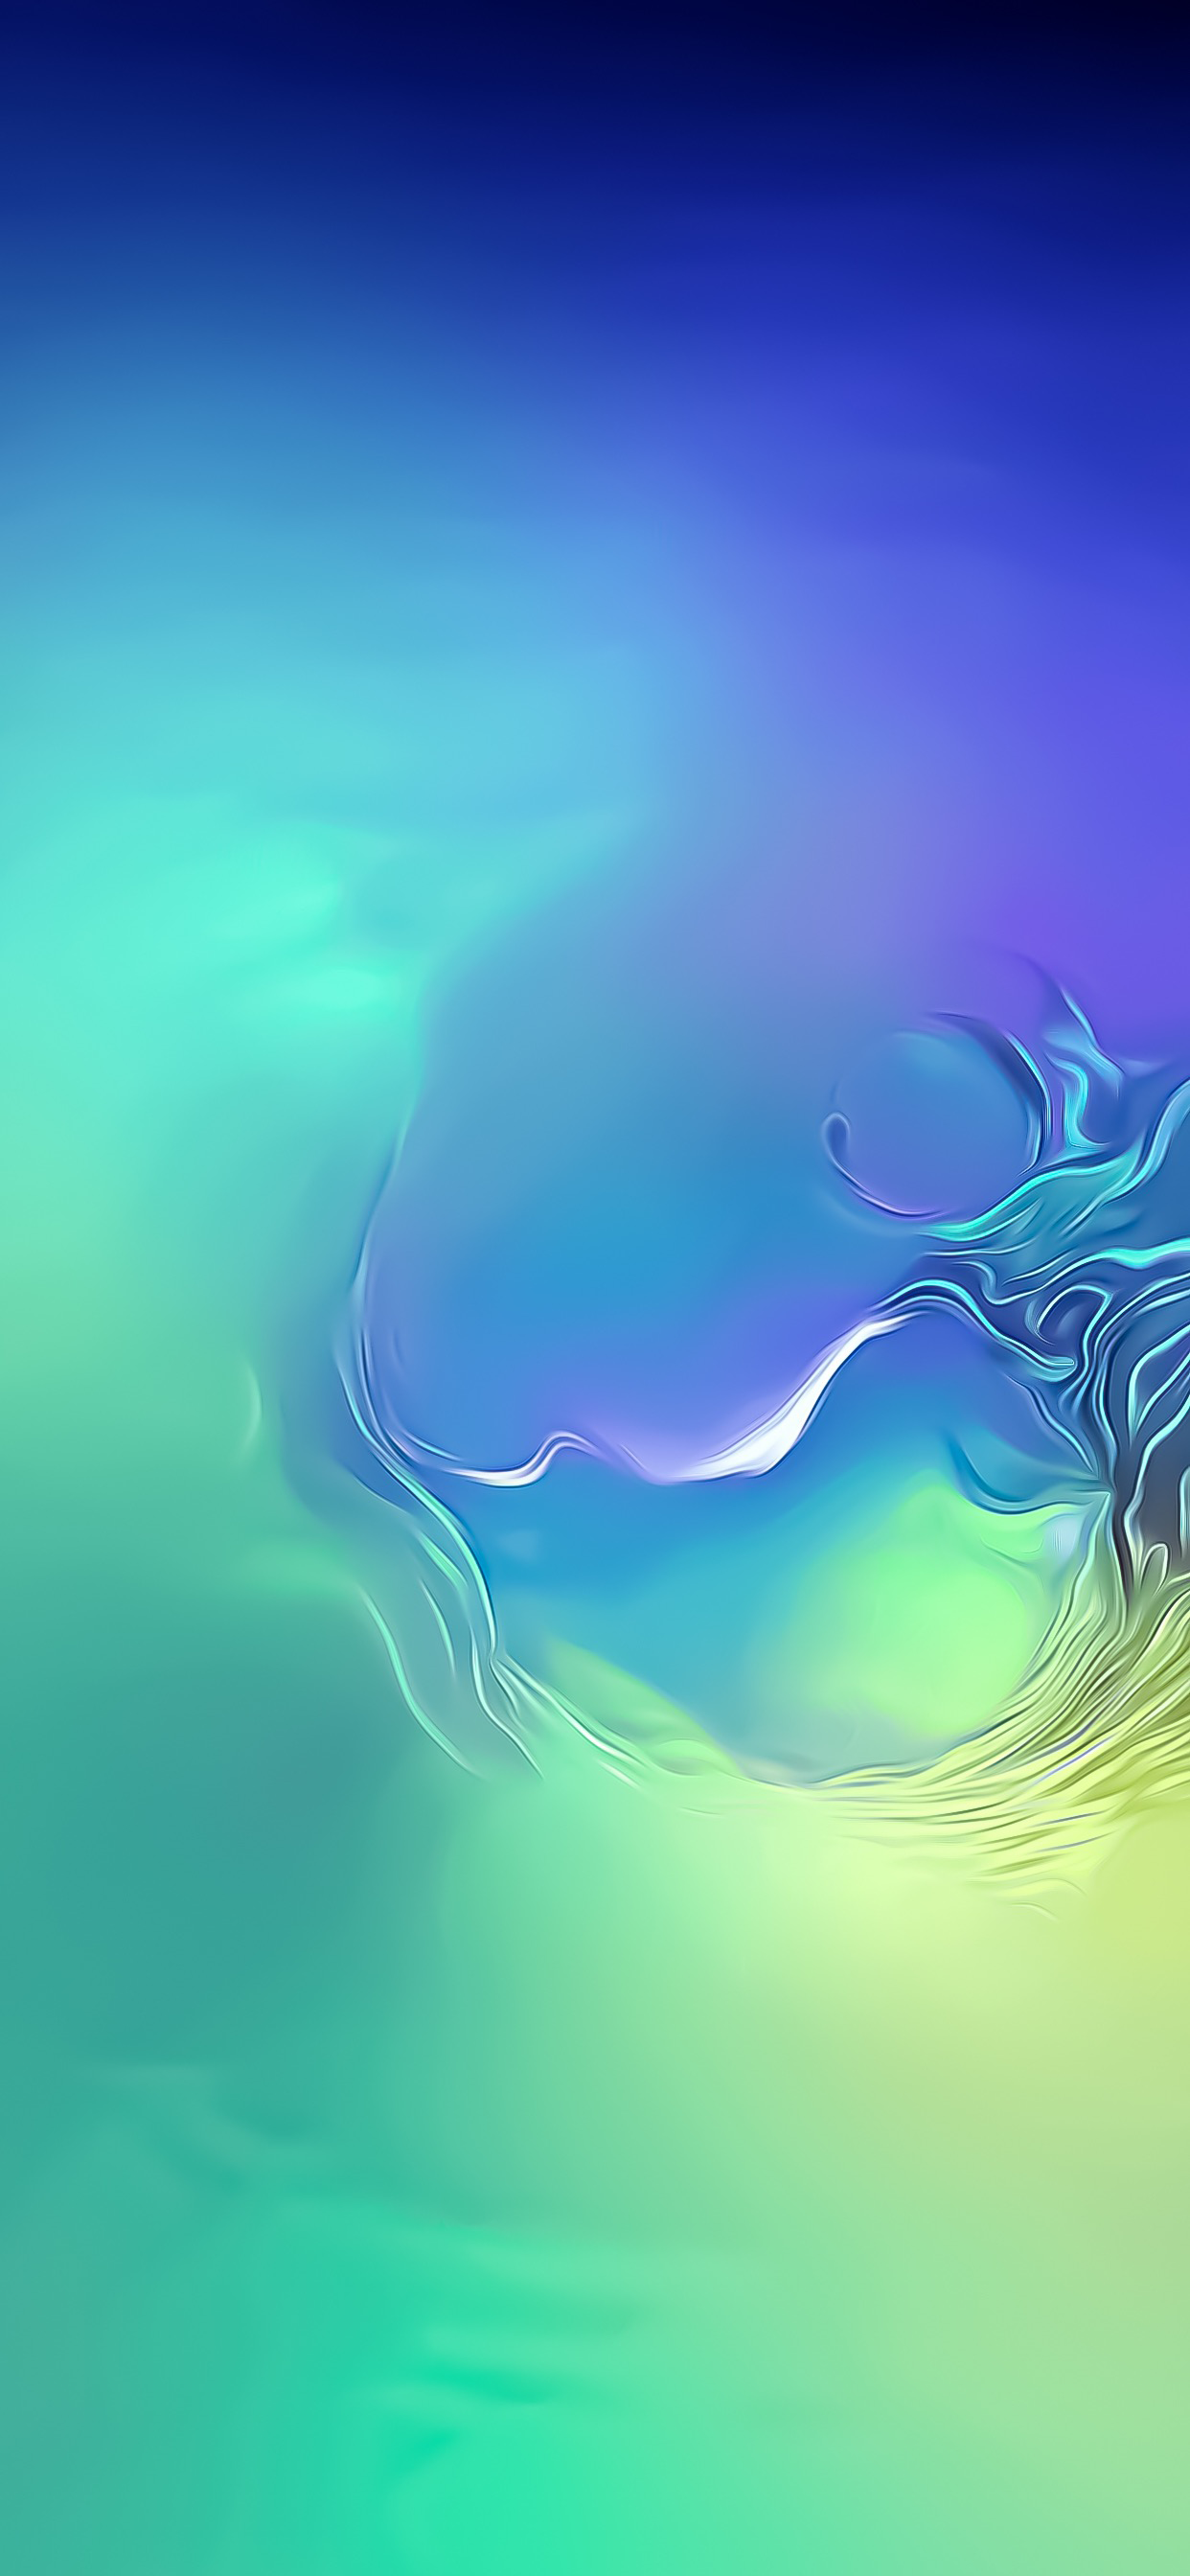 Samsung Galaxy A10 Wallpapers Posted By Ryan Tremblay